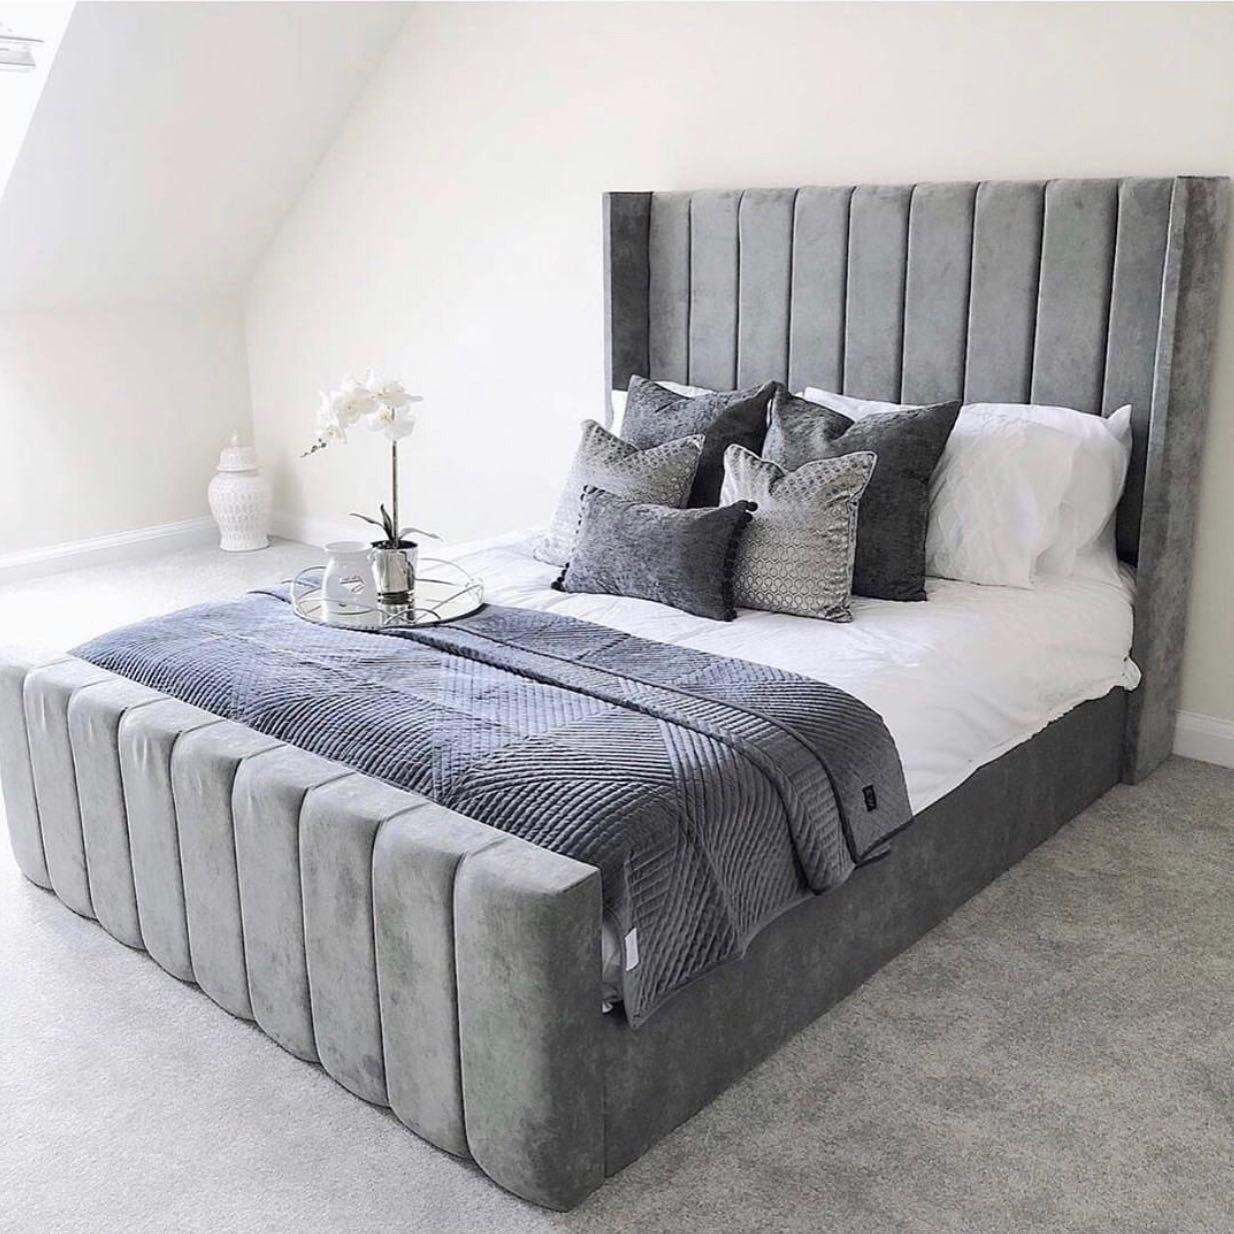 Lined Wingback Bed Plush Velvet Oxford Beds Wingback Beds Majestic Beds Yorkshire Beds Majestic Special Mattresses